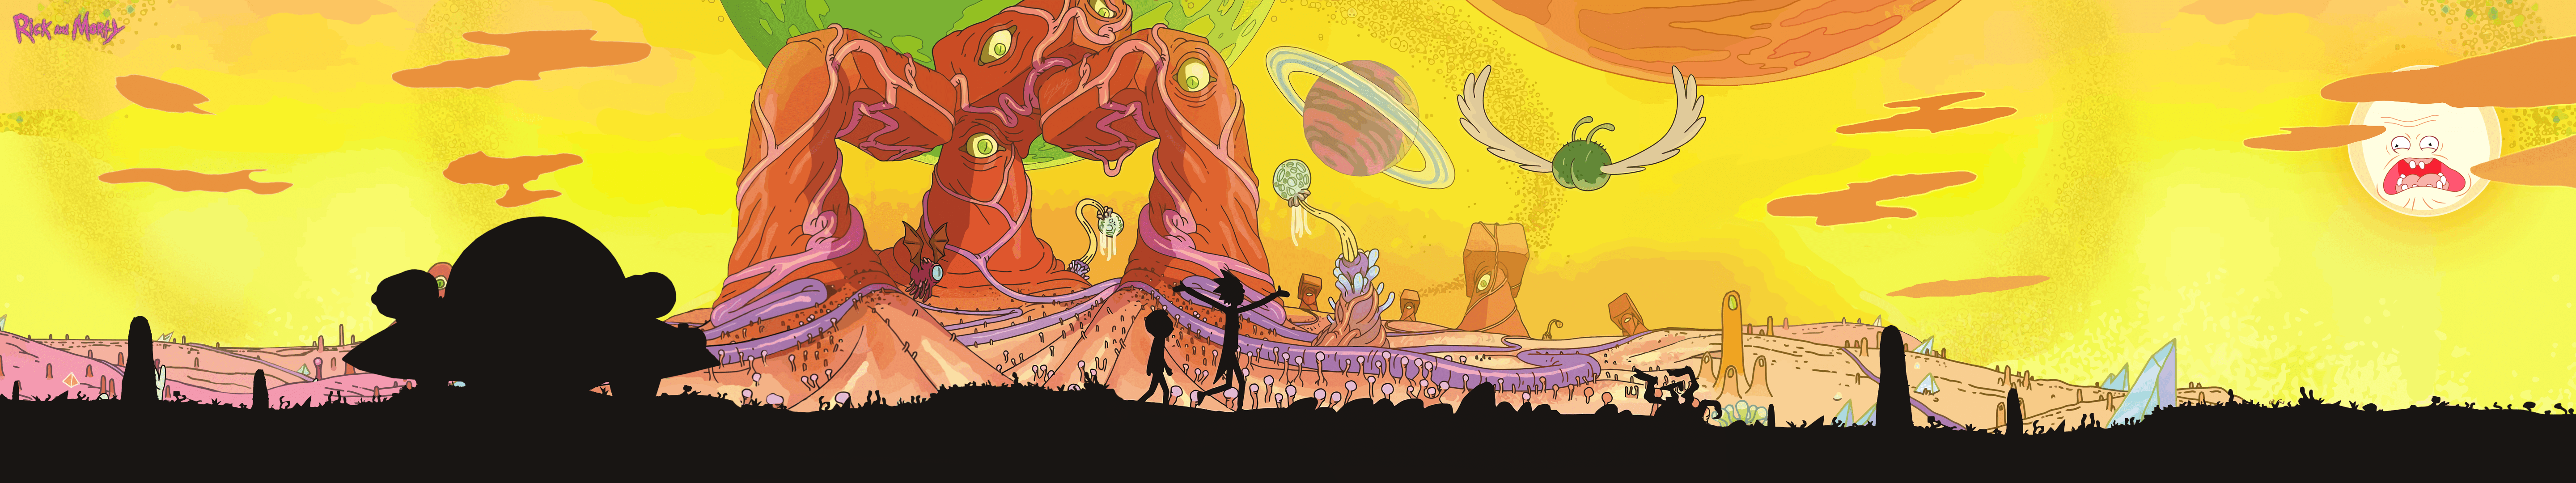 Rick and Morty Triple Monitor Wallpapers by EasyCzT